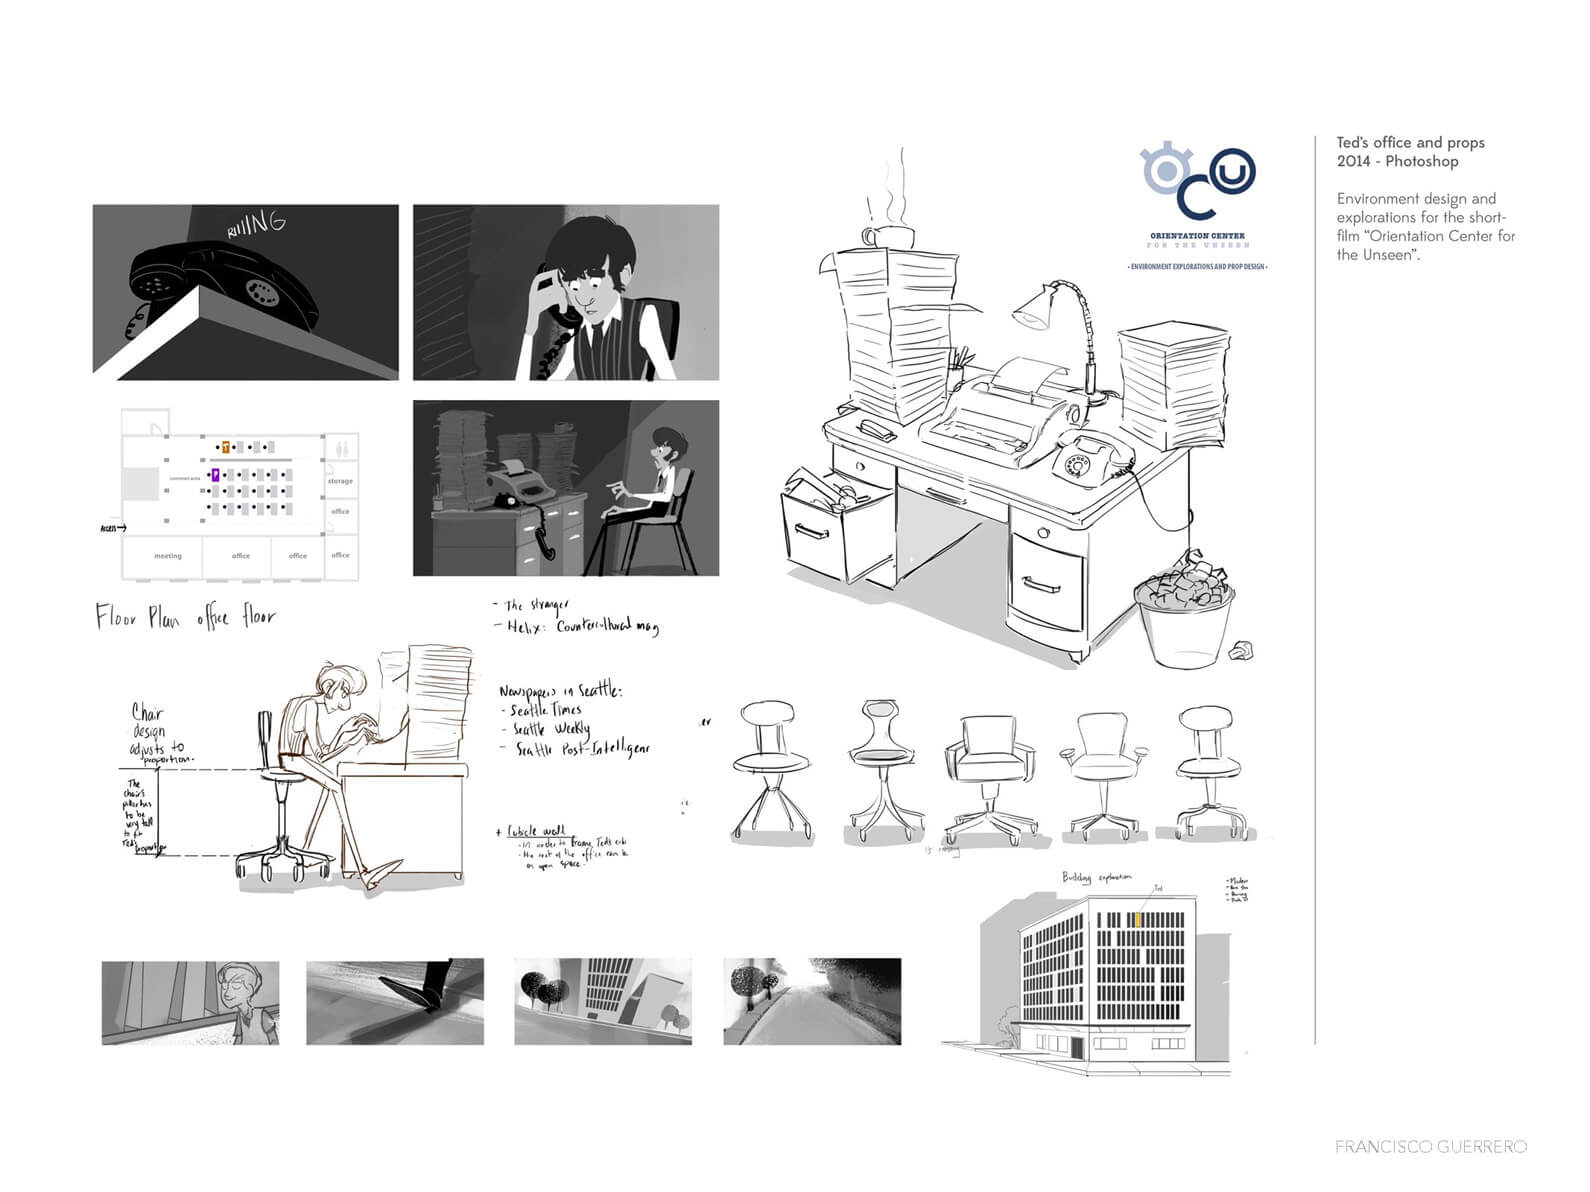 Black and white environment design and exploration for office setting in Orientation Center for the Unseen